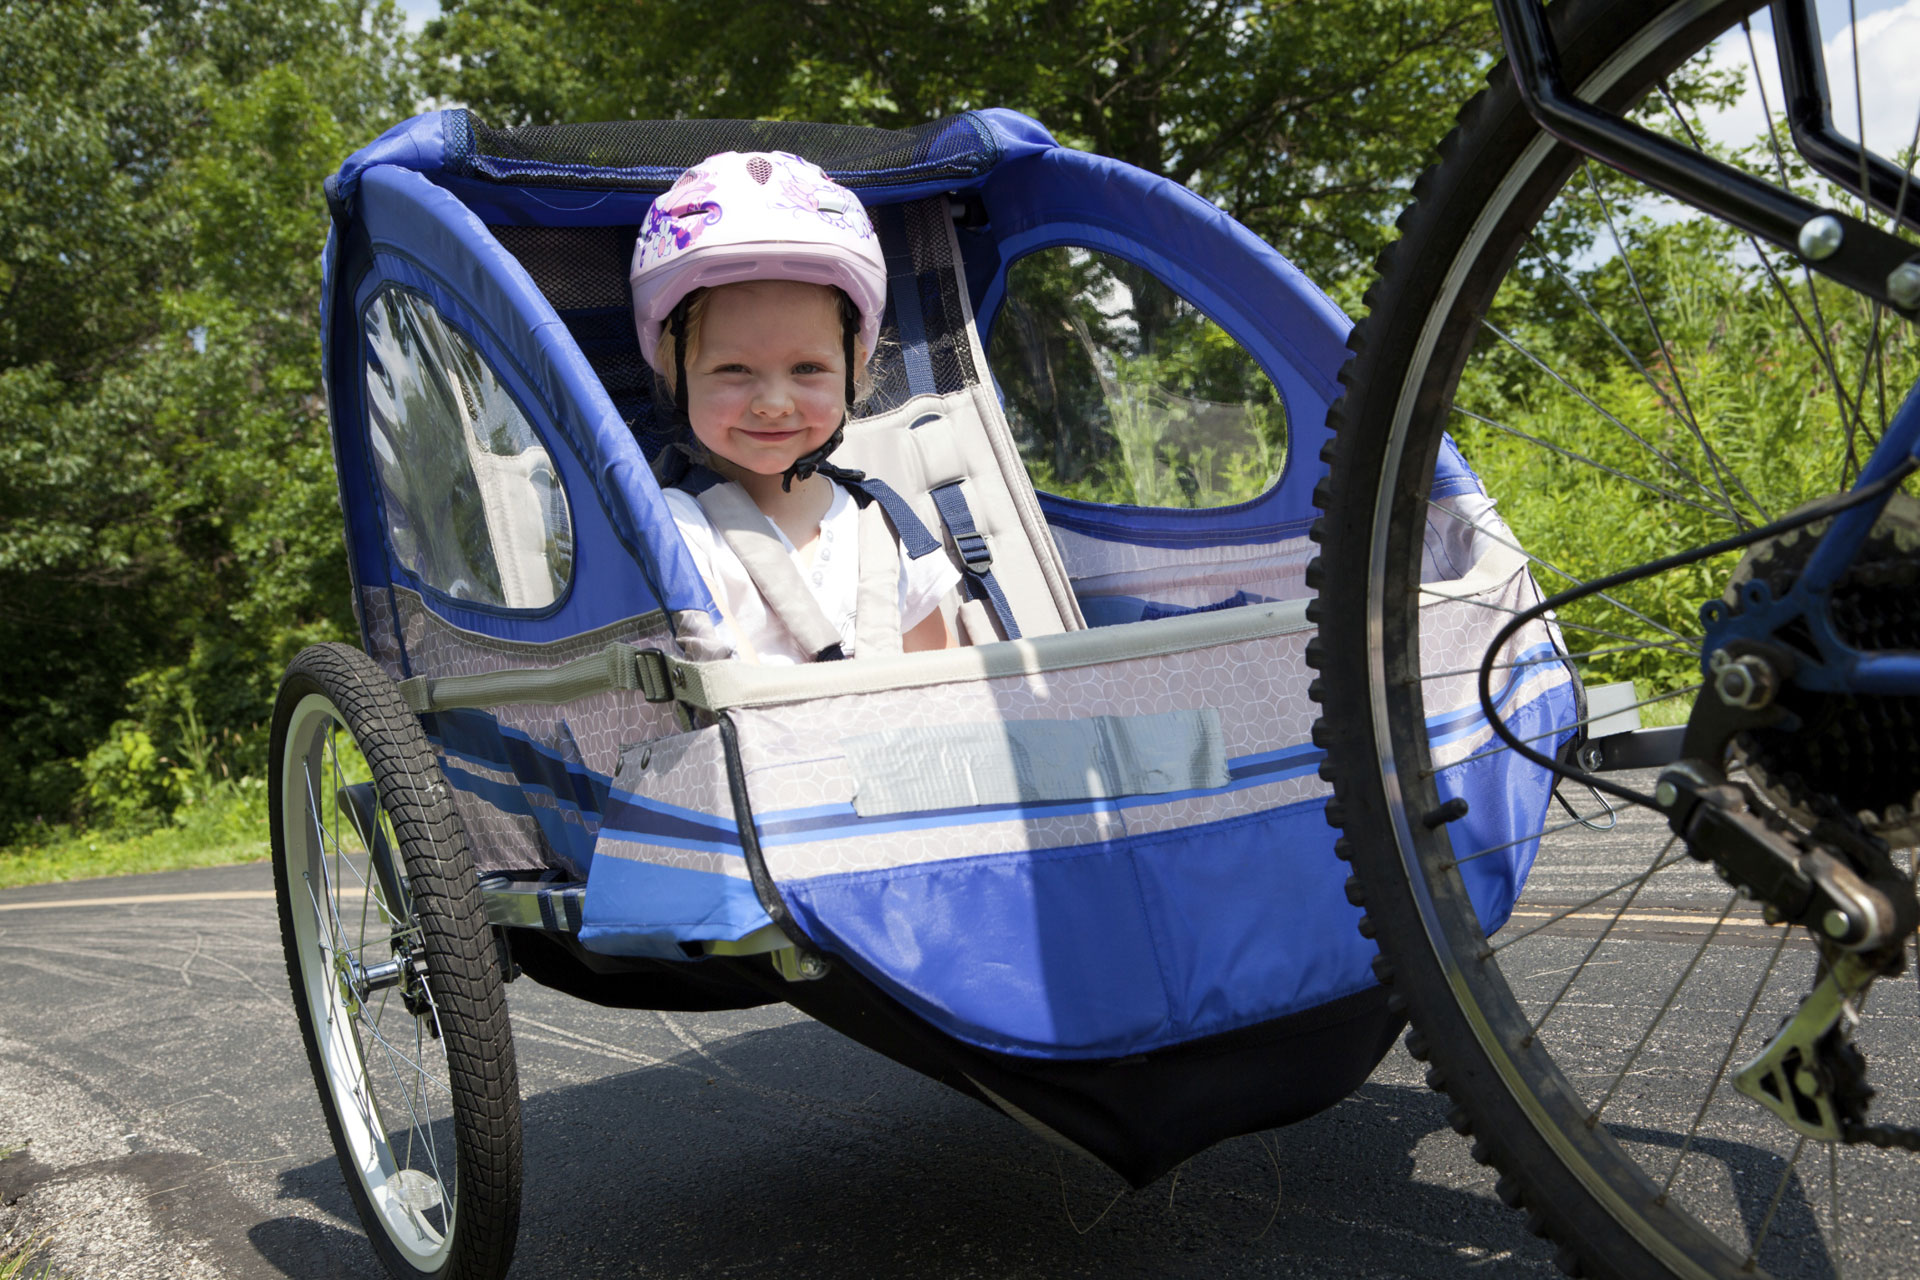 Child in bike trailer